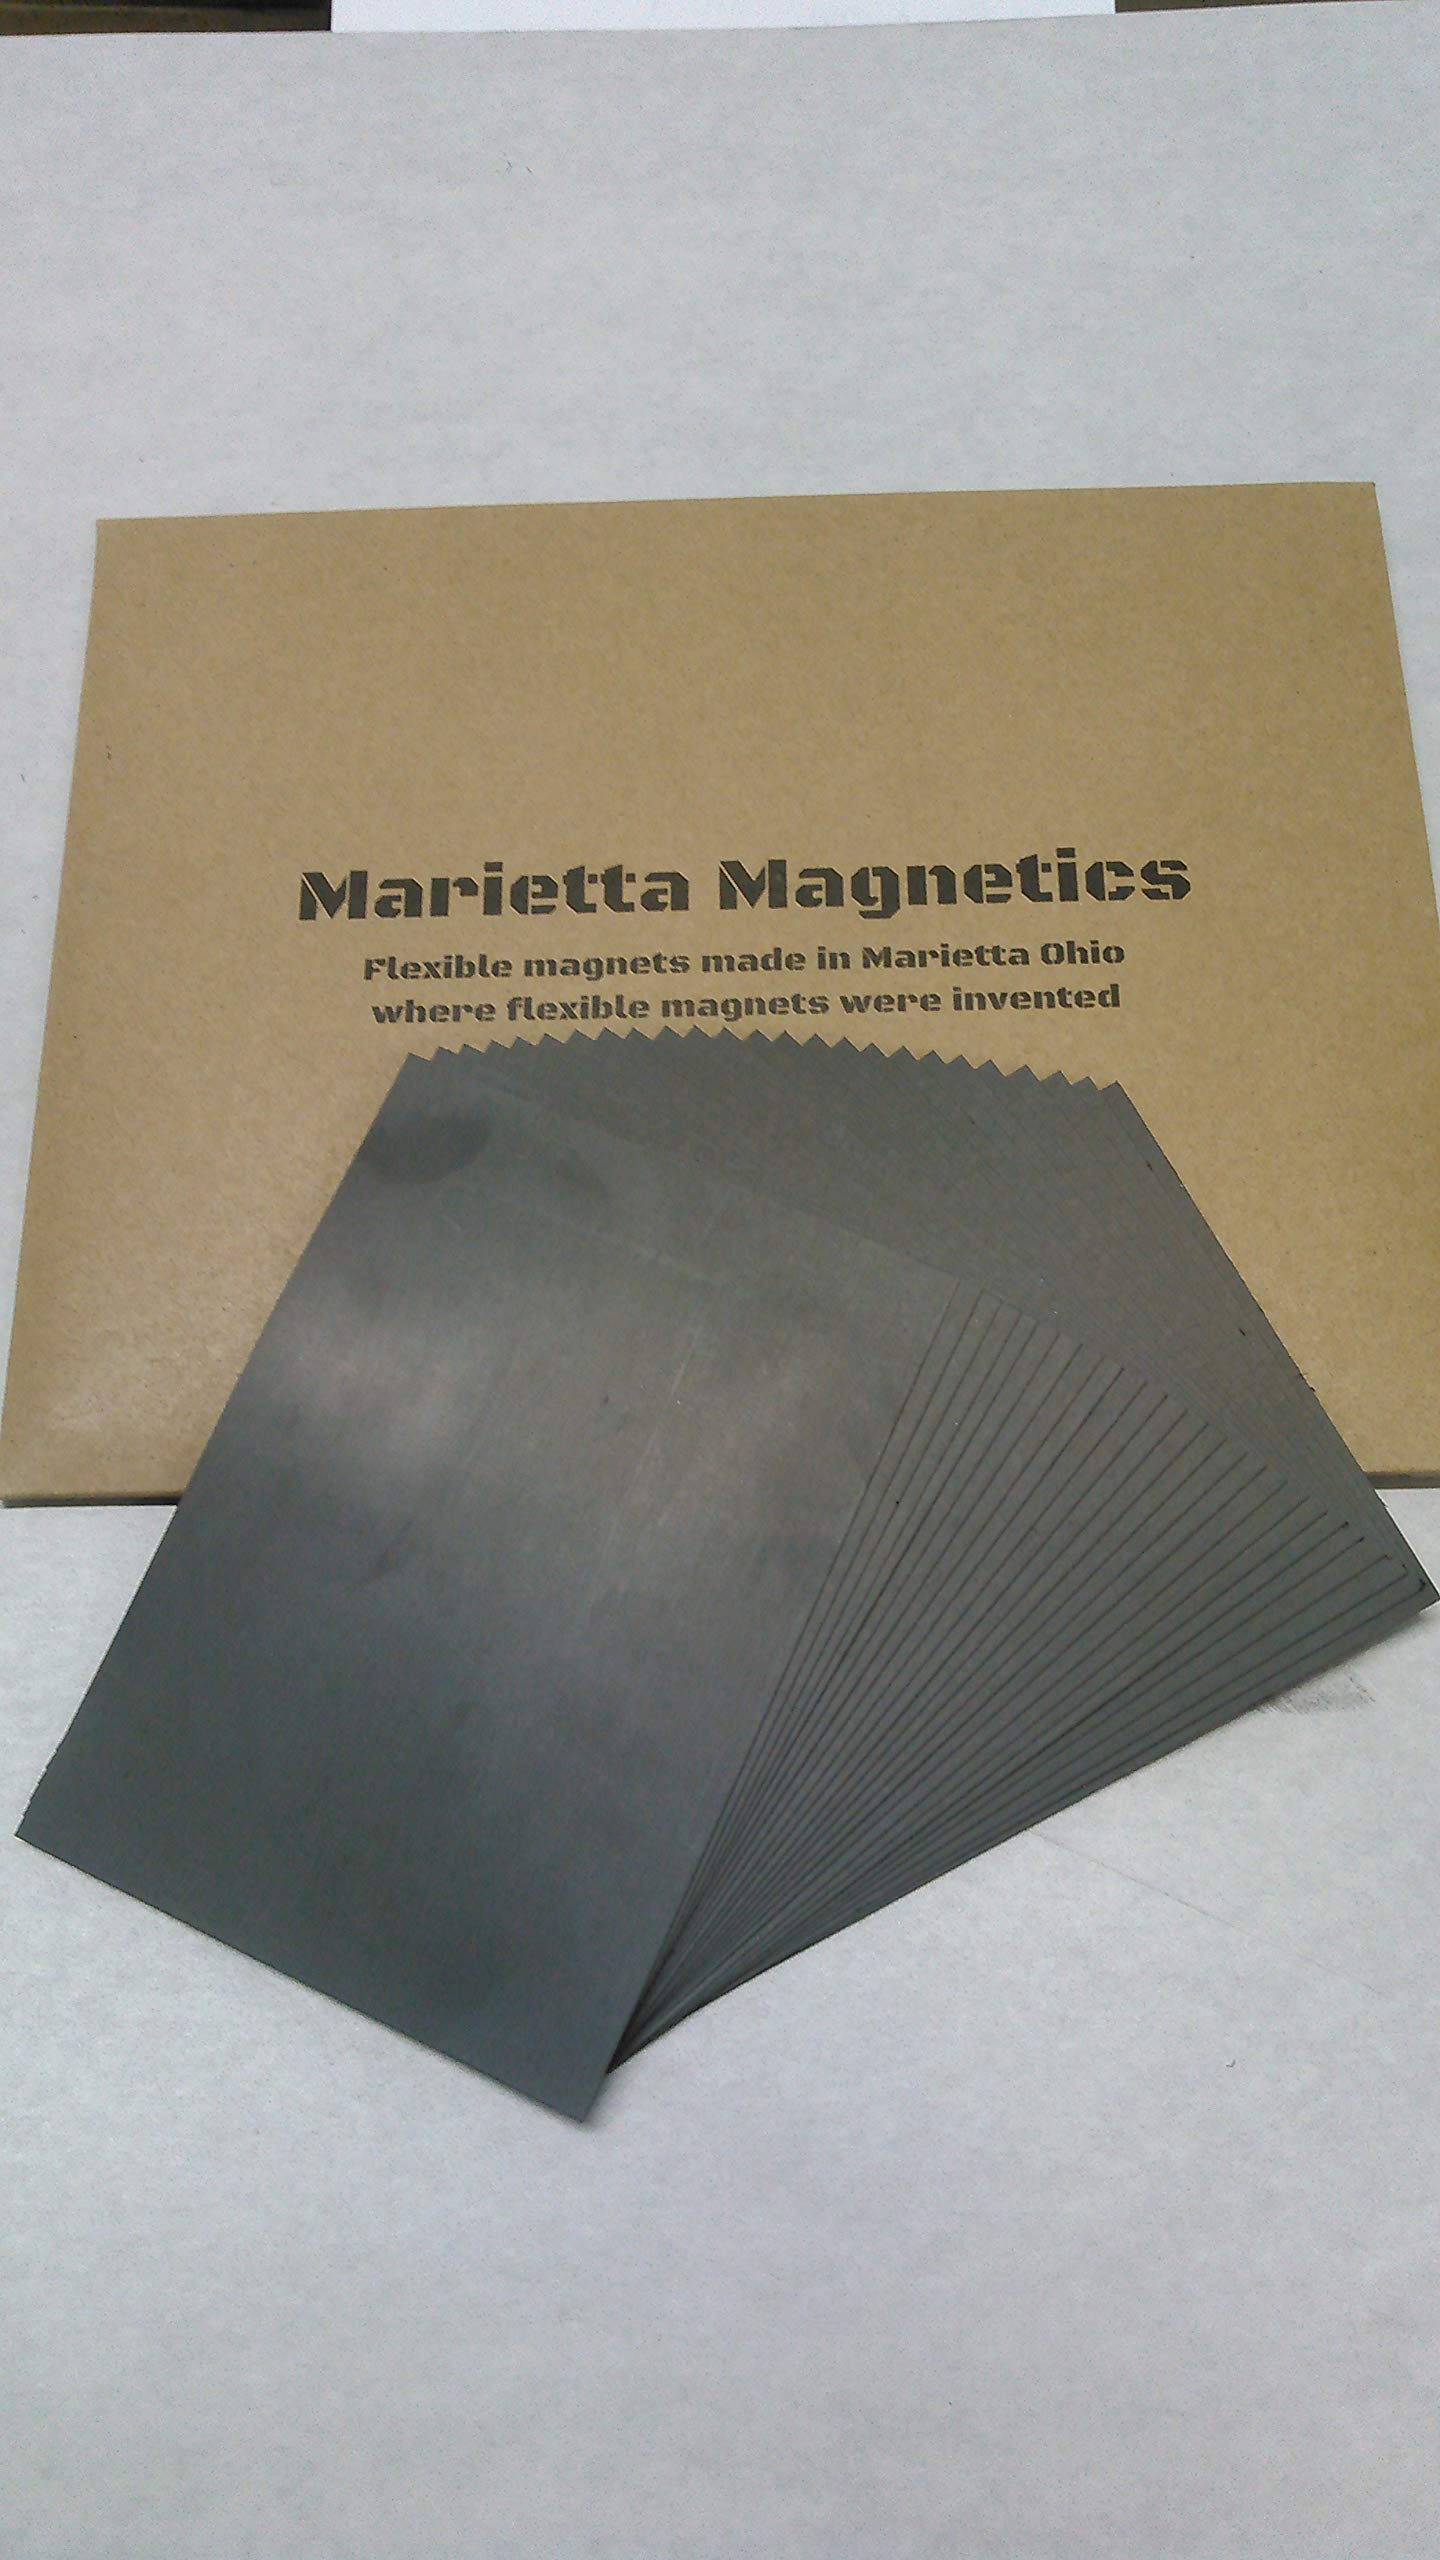 Marietta Magnetics 8.5 x 11 Plain Magnet Sheets 30 mil - 10 Pack by Marietta Magnetics